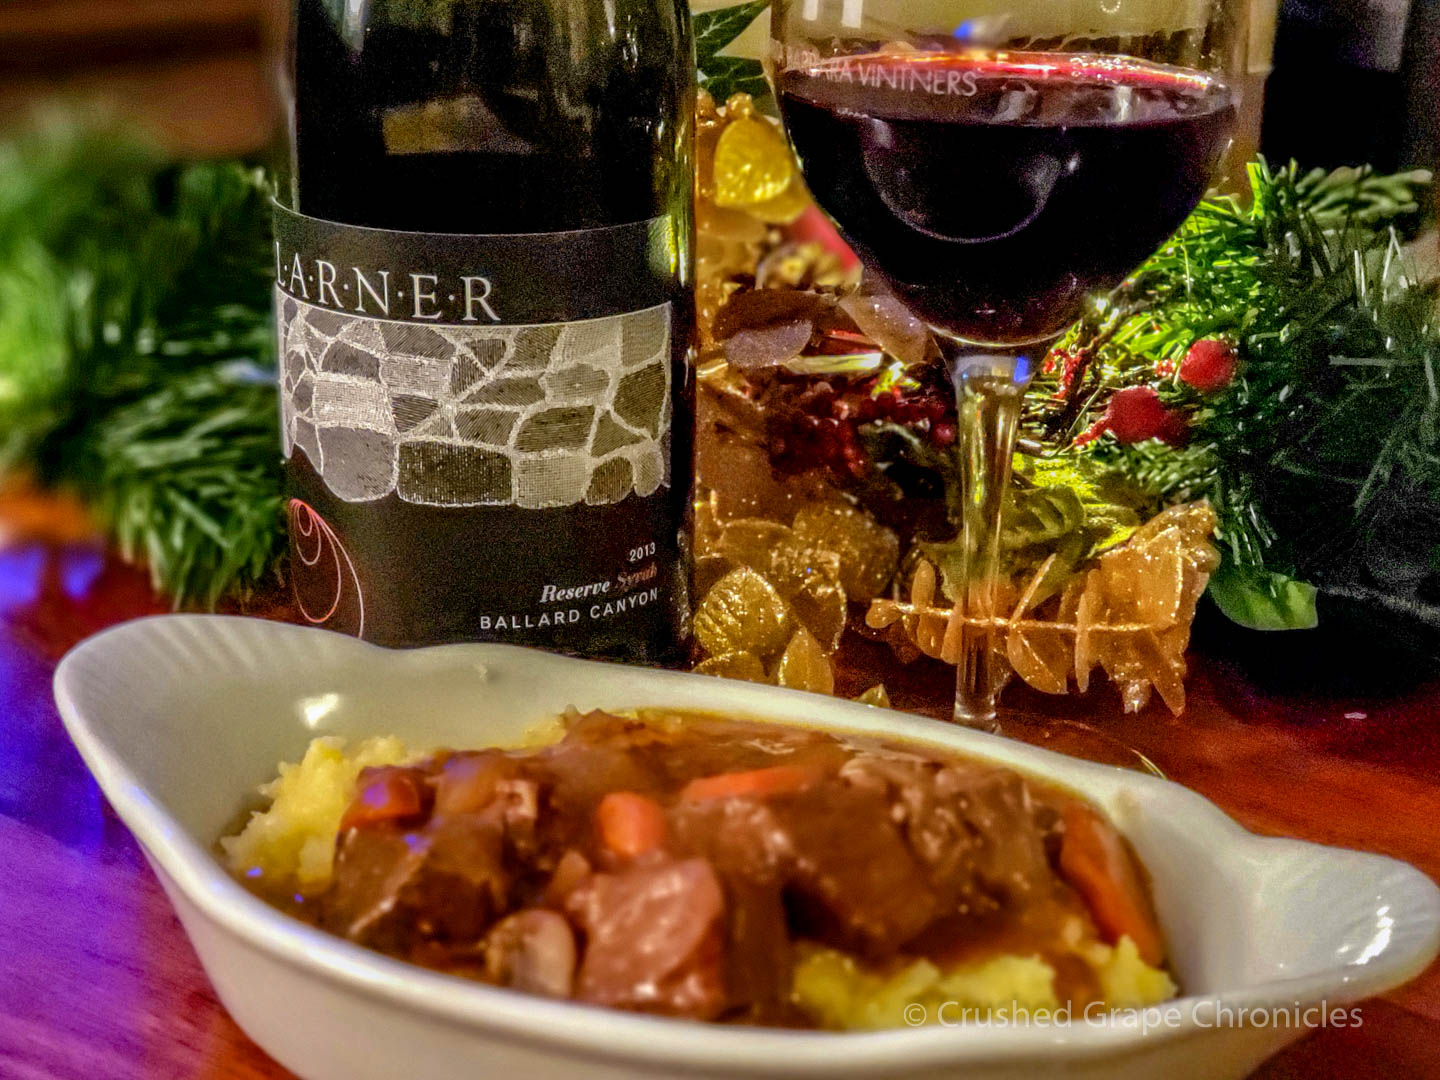 Larner Reserve Syrah with Beef stew and Polenta